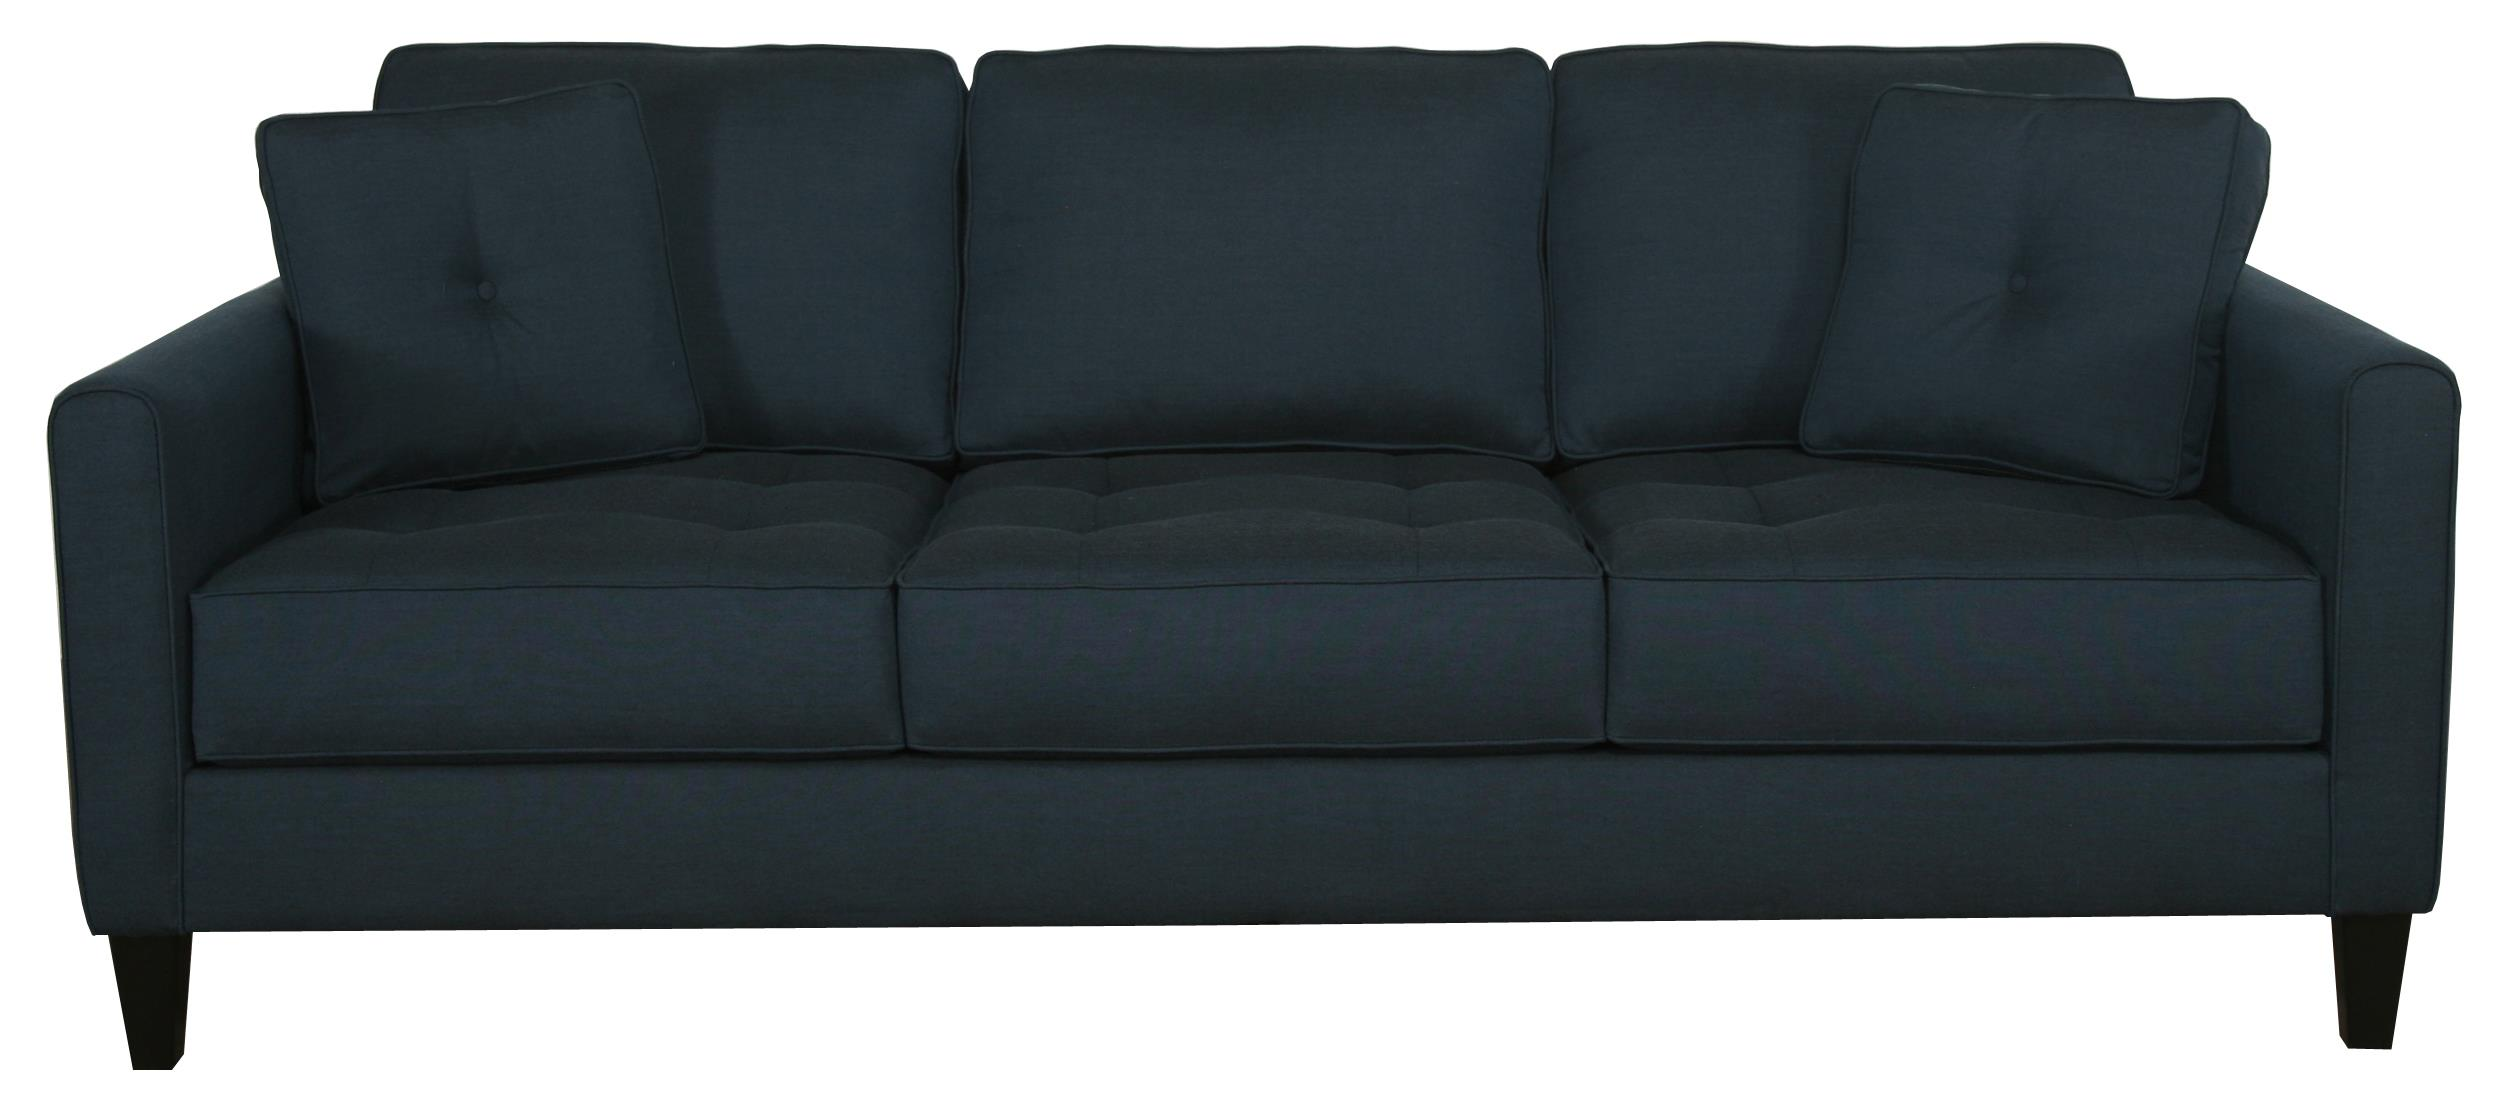 Bauhaus furniture sofa for Bauhaus sofa bed